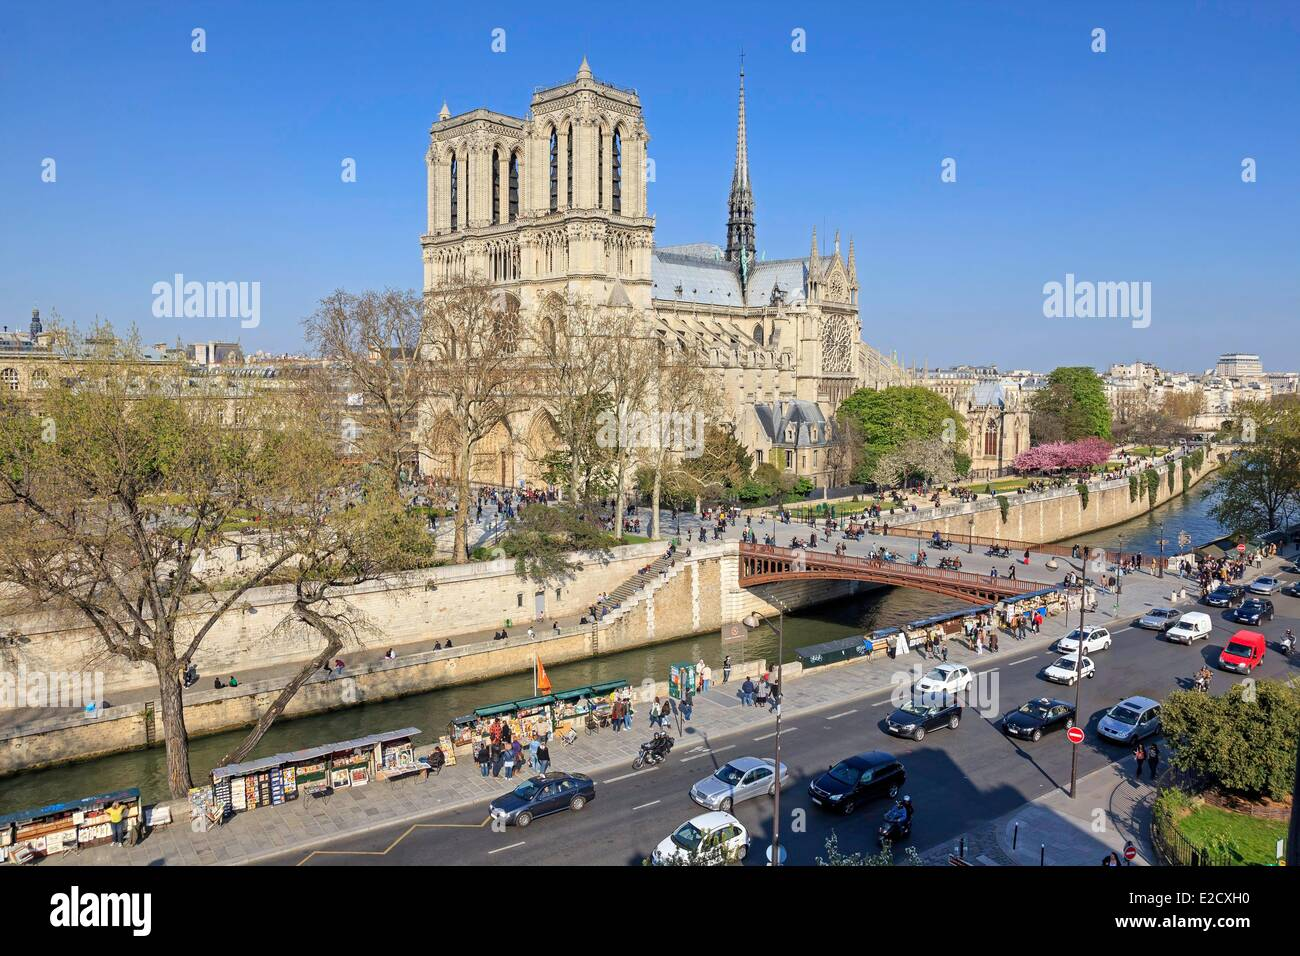 France Paris Seine river banks listed as World Heritage by UNESCO Notre Dame cathedral on the City island with book - Stock Image